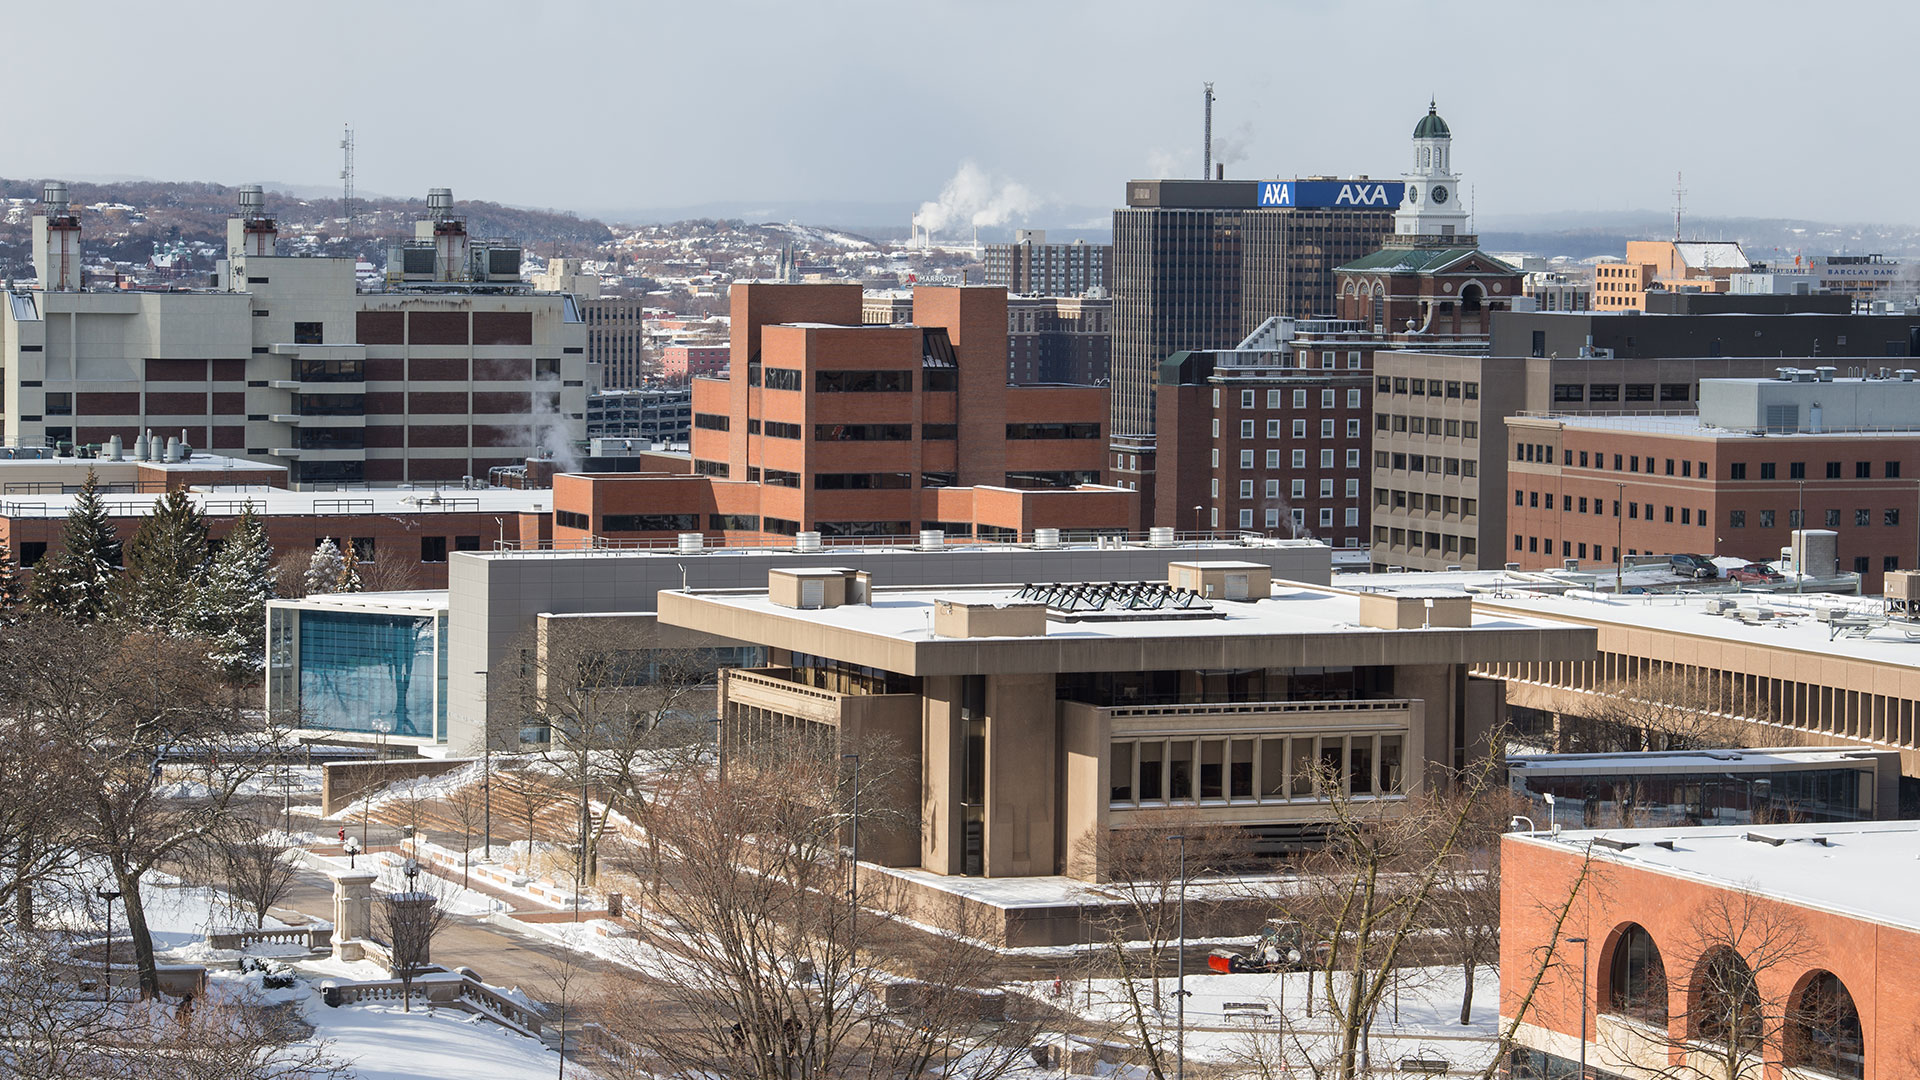 View of the city of Syracuse from campus